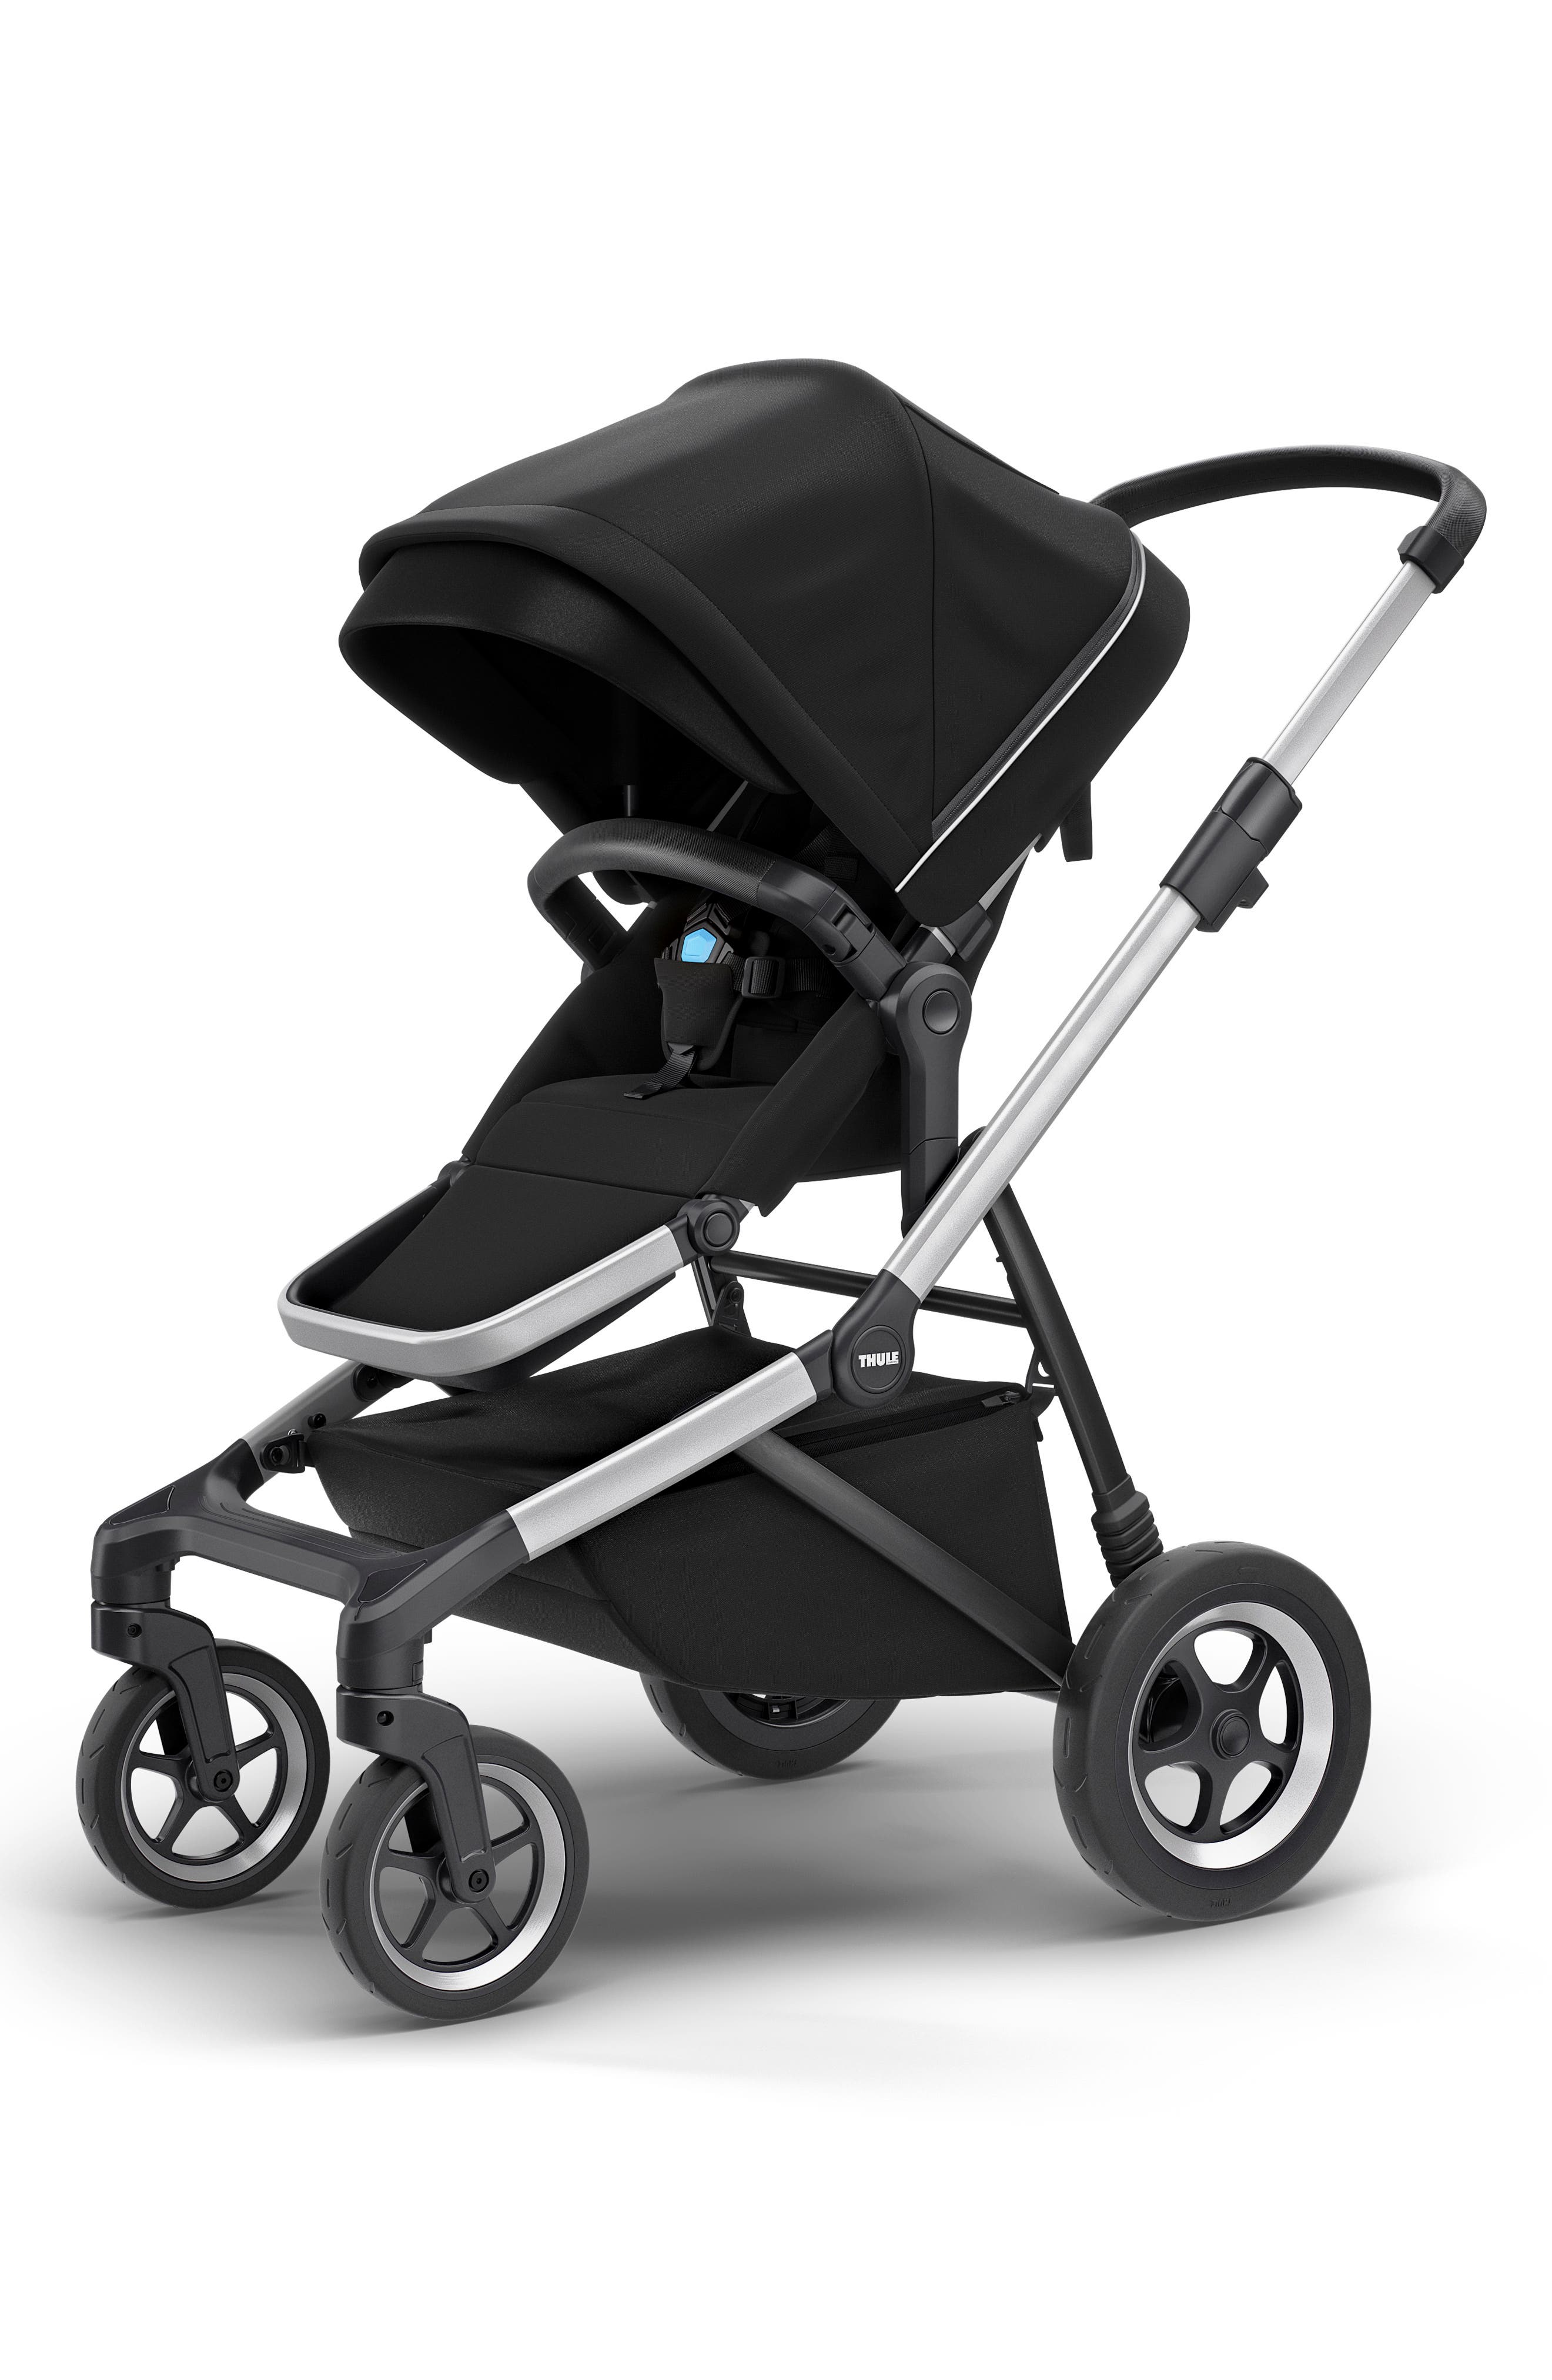 2018 Sleek City Stroller,                             Main thumbnail 1, color,                             BLACK